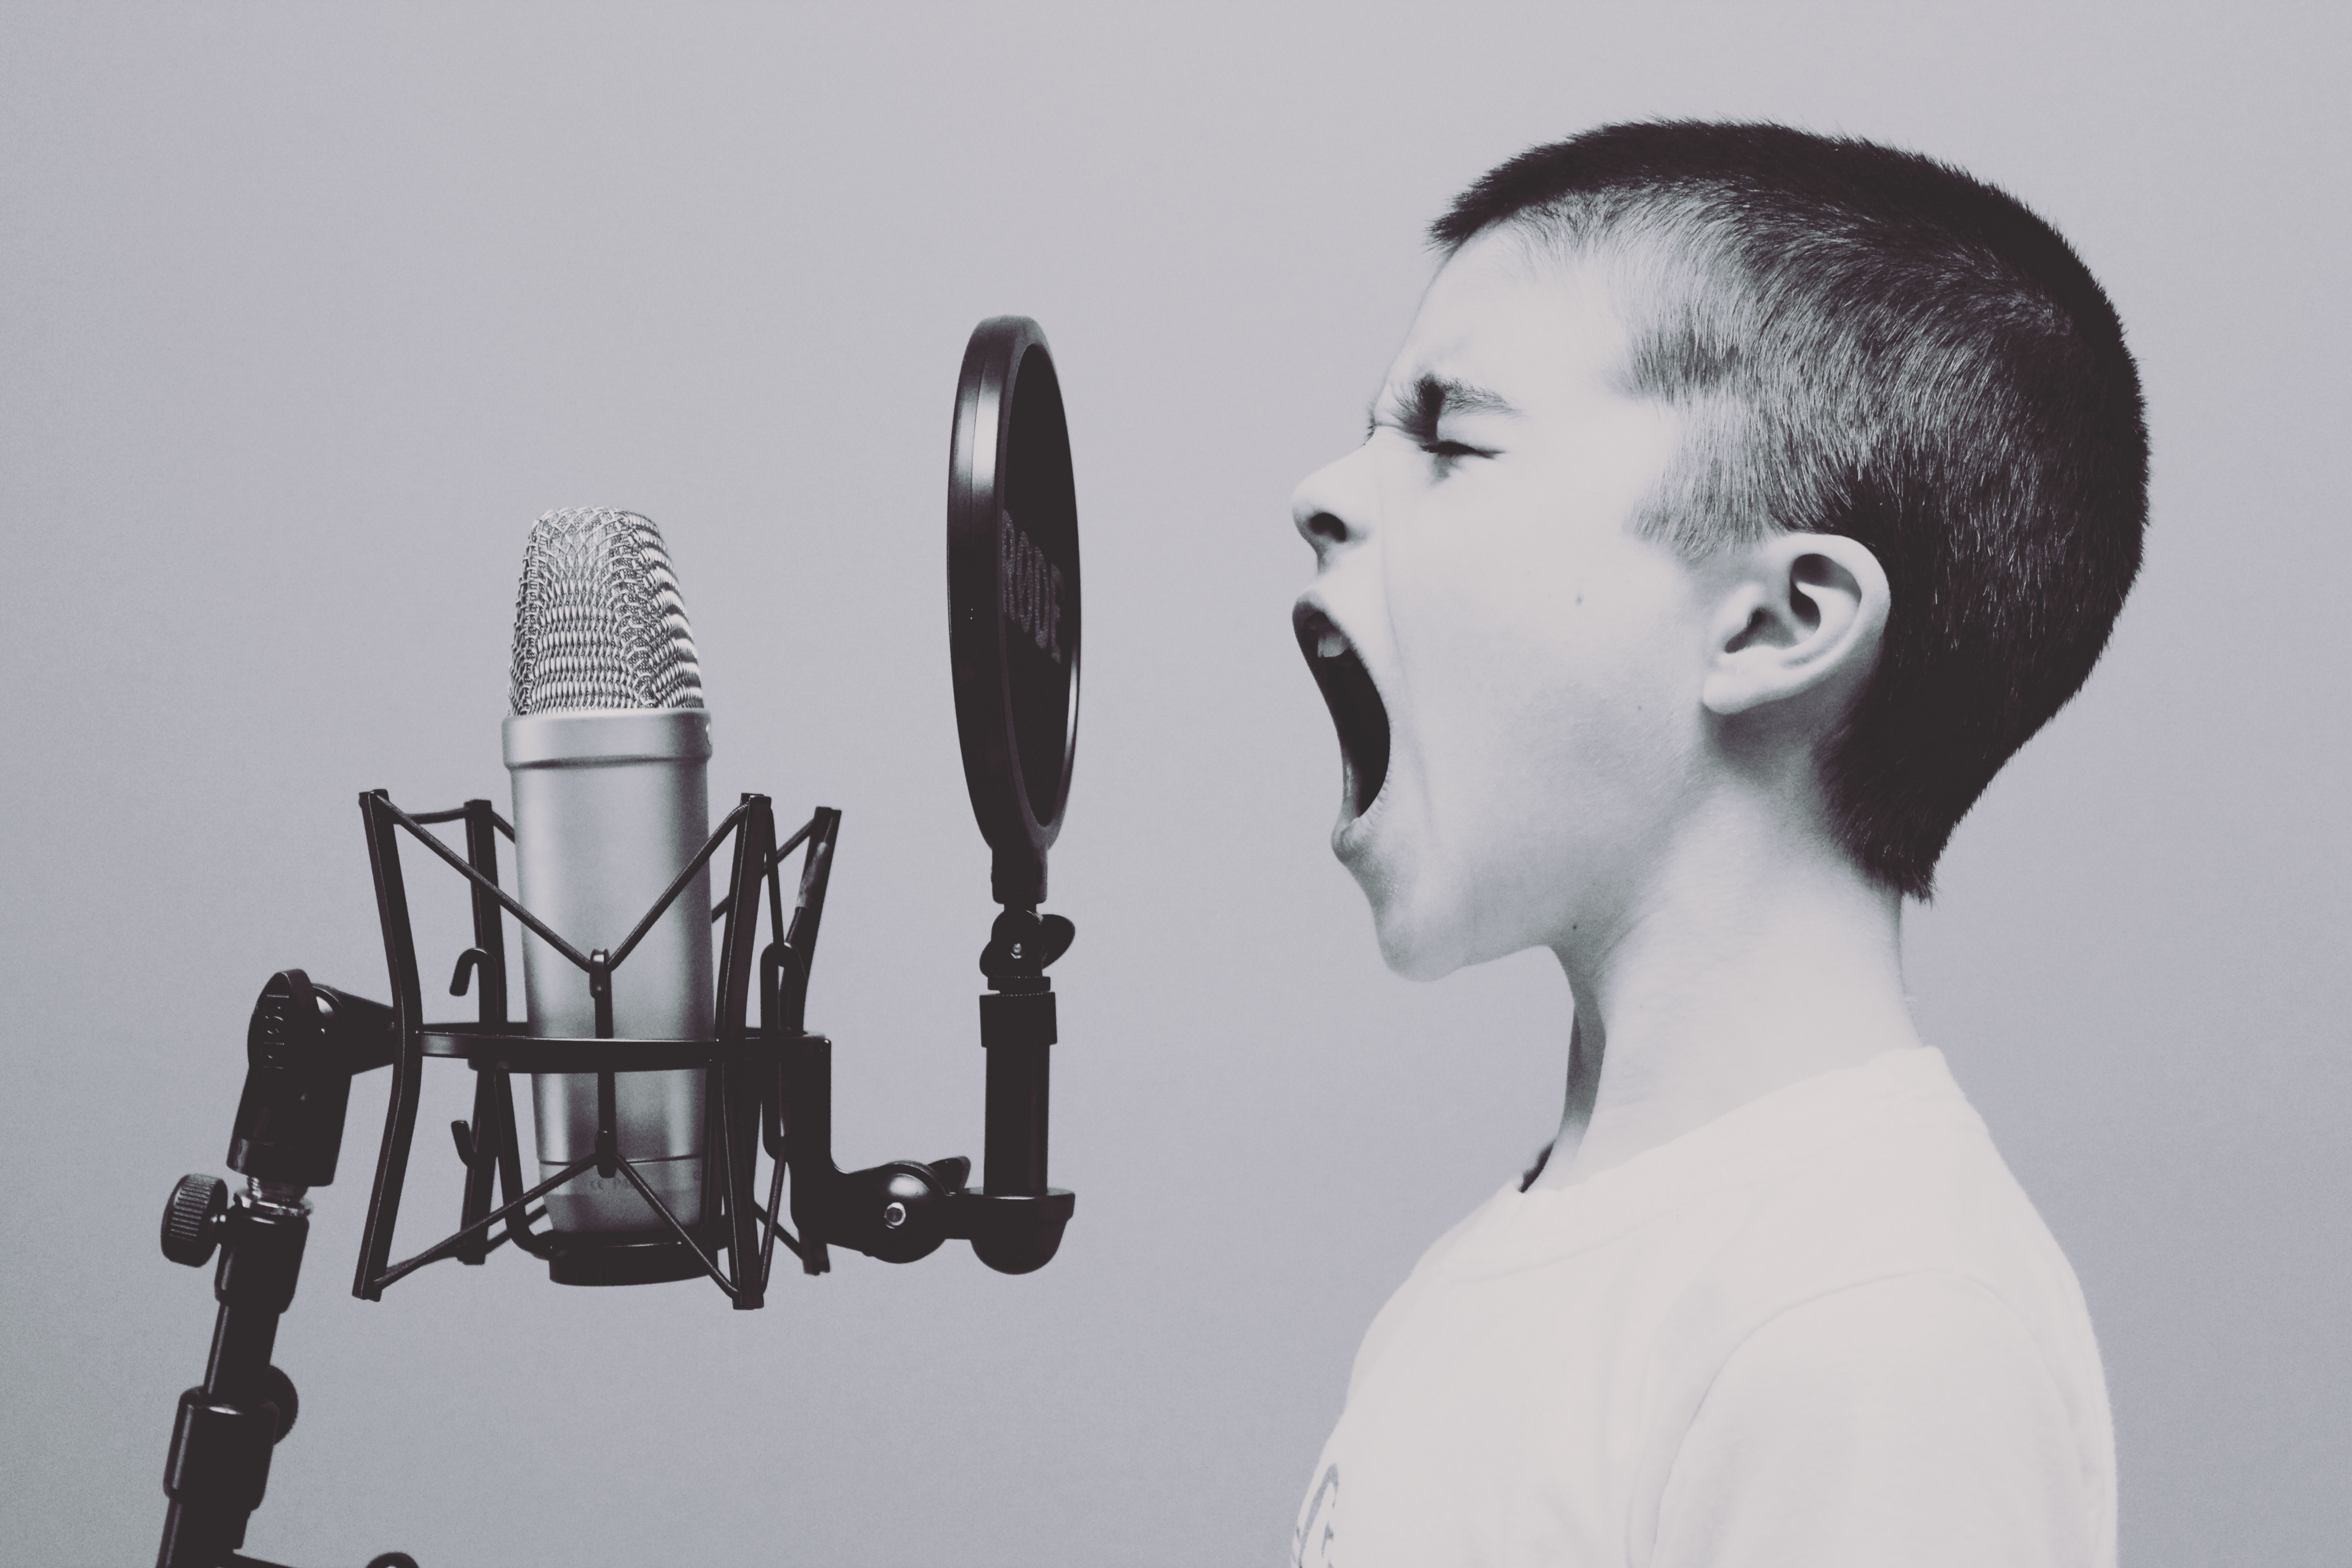 A black and white image of a young boy, eyes closed, singingly loudly into a microphone.